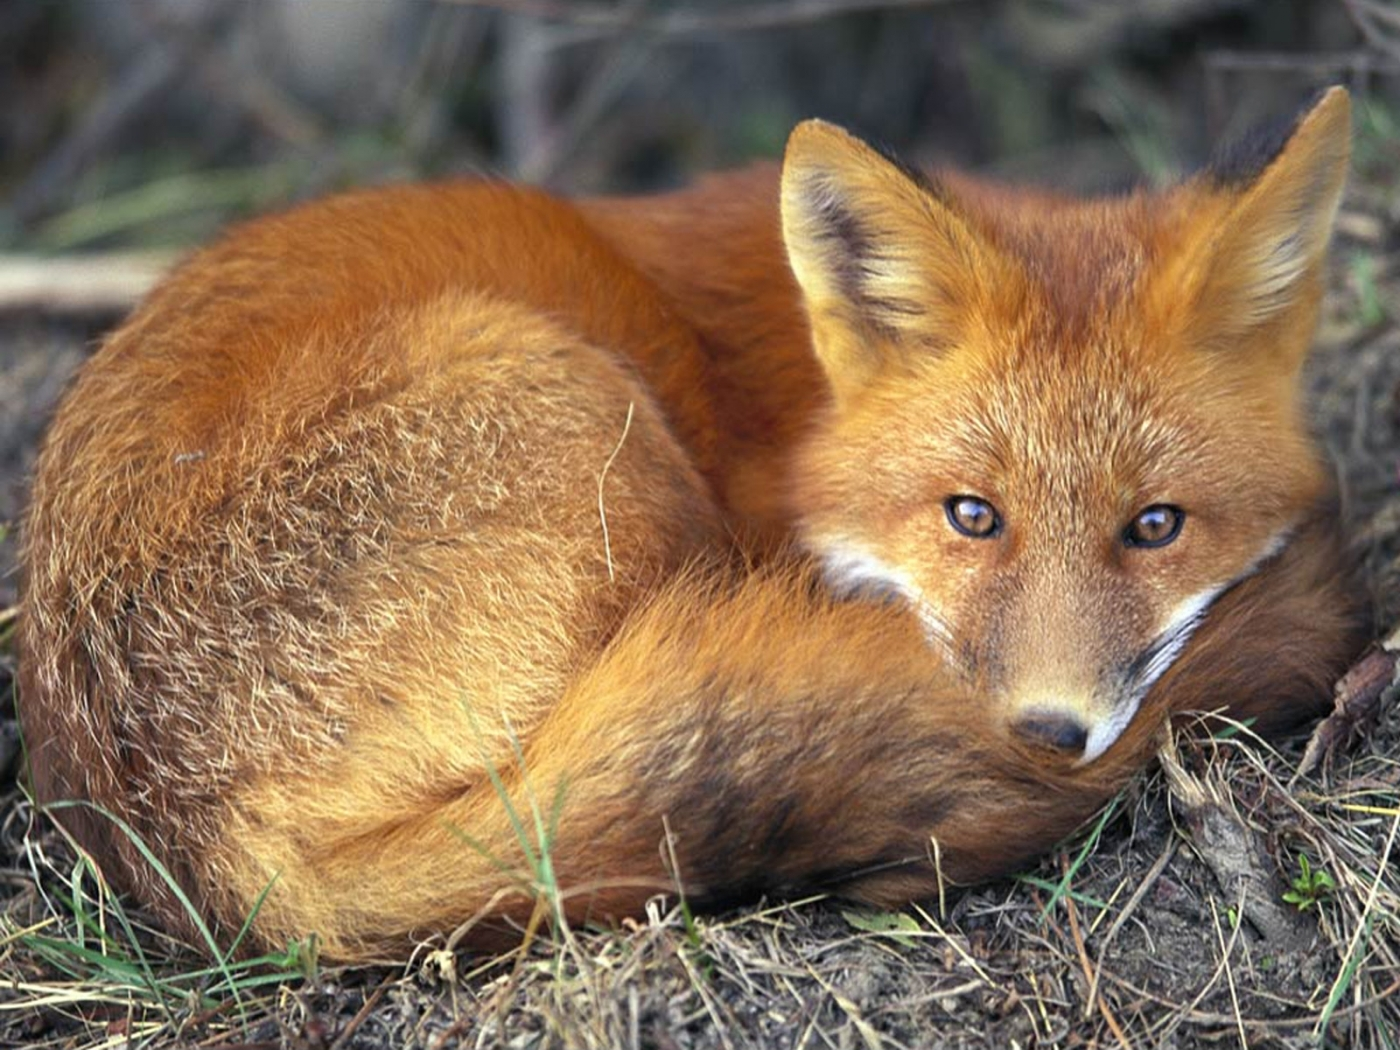 45901 download wallpaper Animals, Fox screensavers and pictures for free